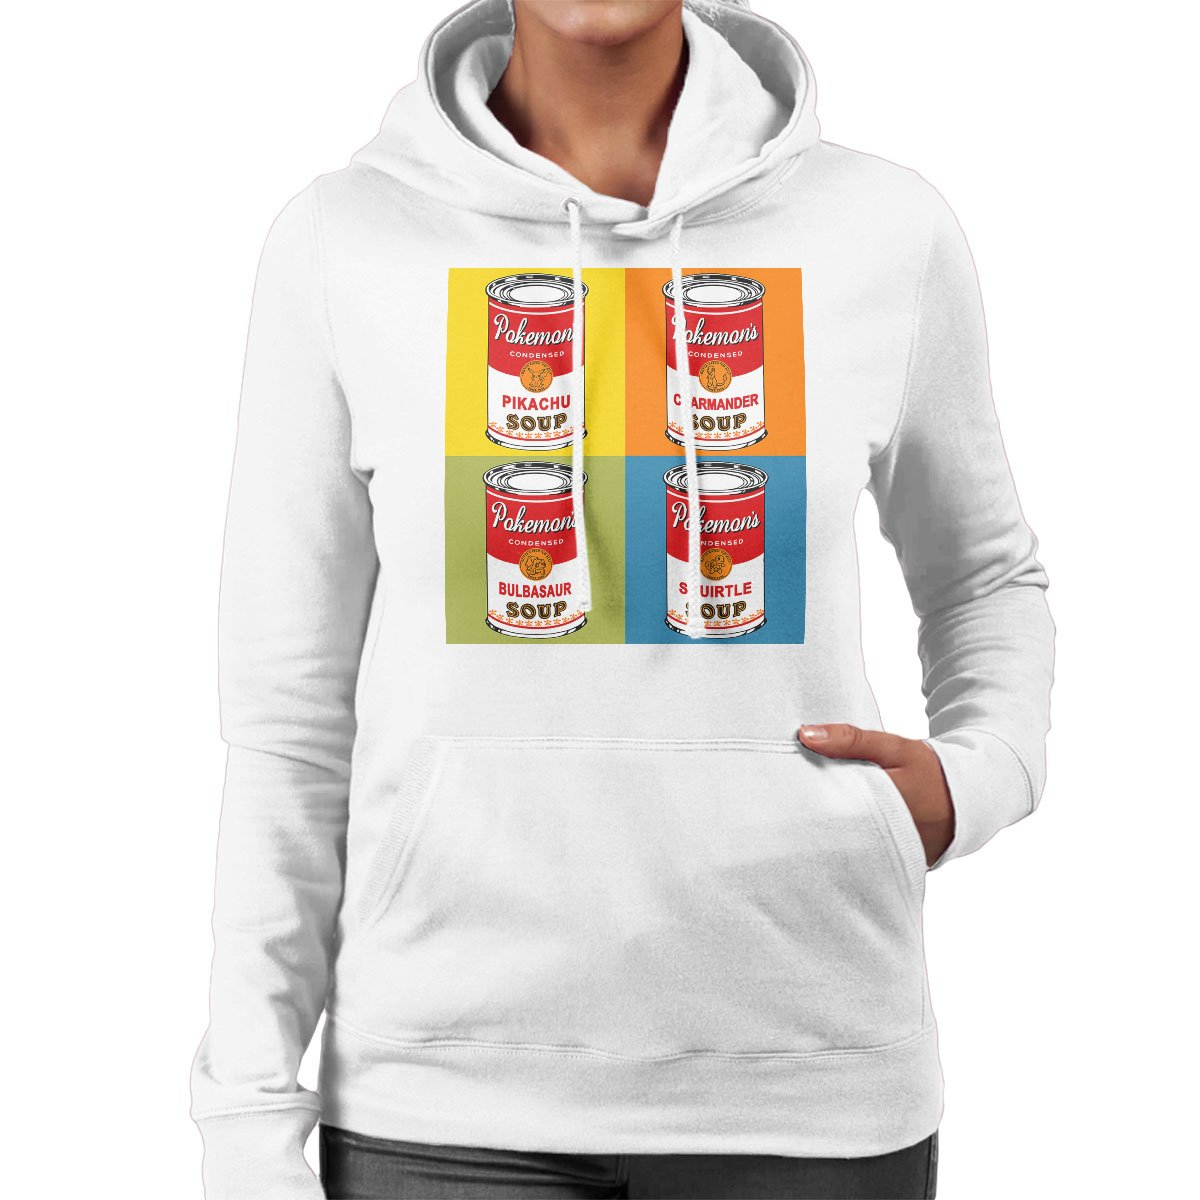 Pokemon Pop Soup Cans Womens Hooded Sweatshirt: Amazon.es: Ropa y accesorios